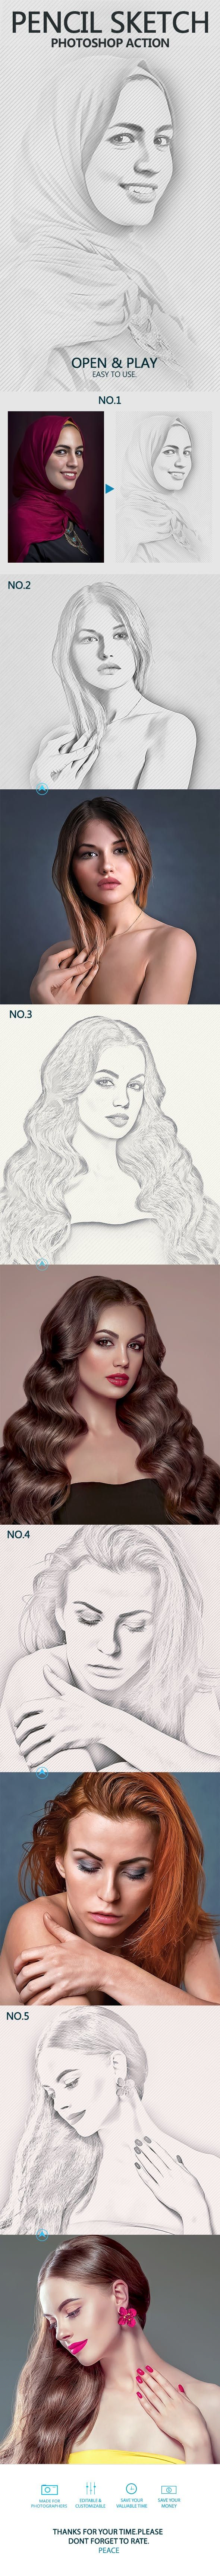 Pencil sketch photoshop action photo effects actions